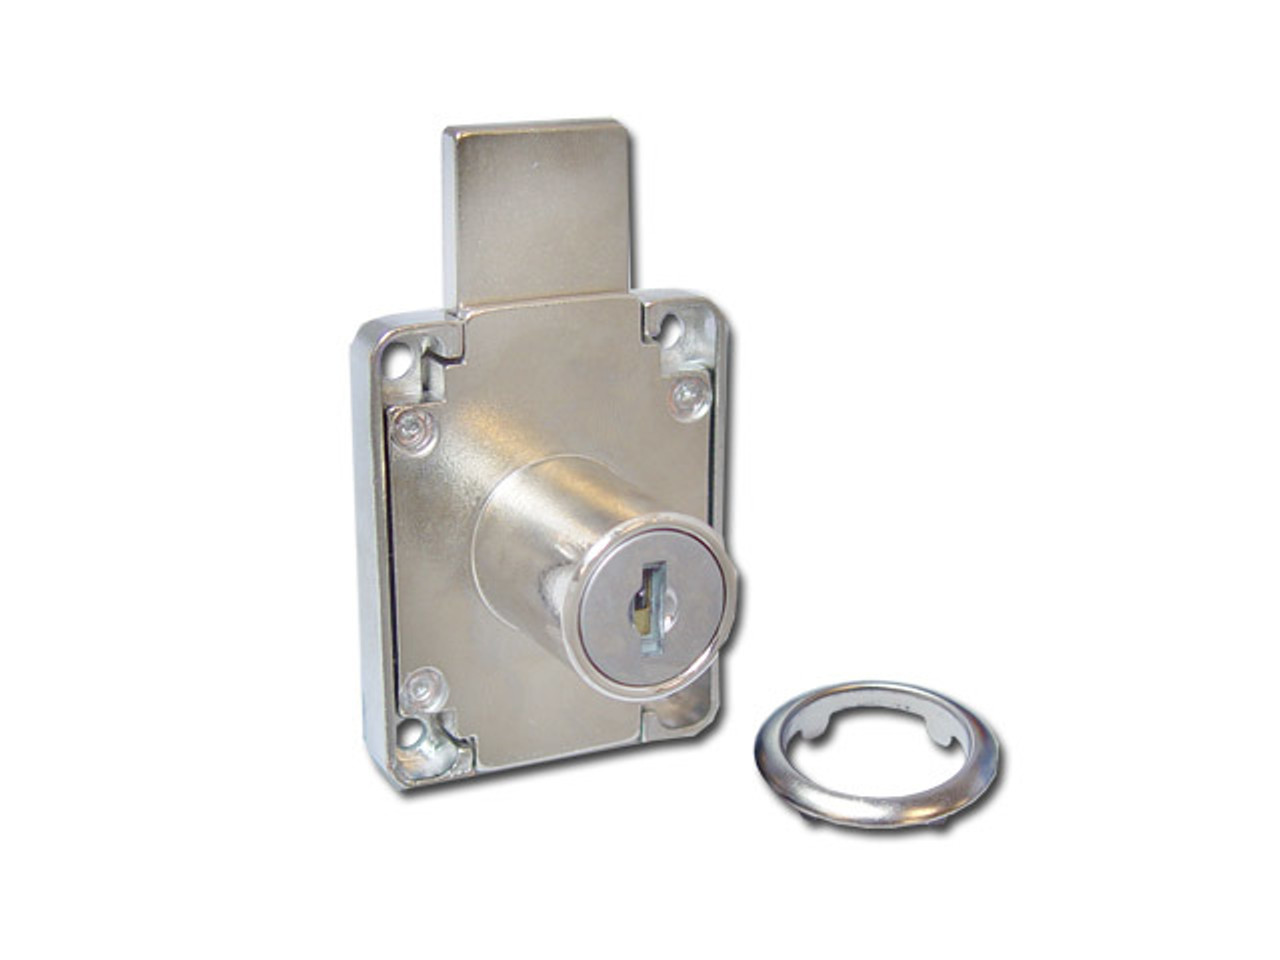 Nickle Plated two turn latch lock.